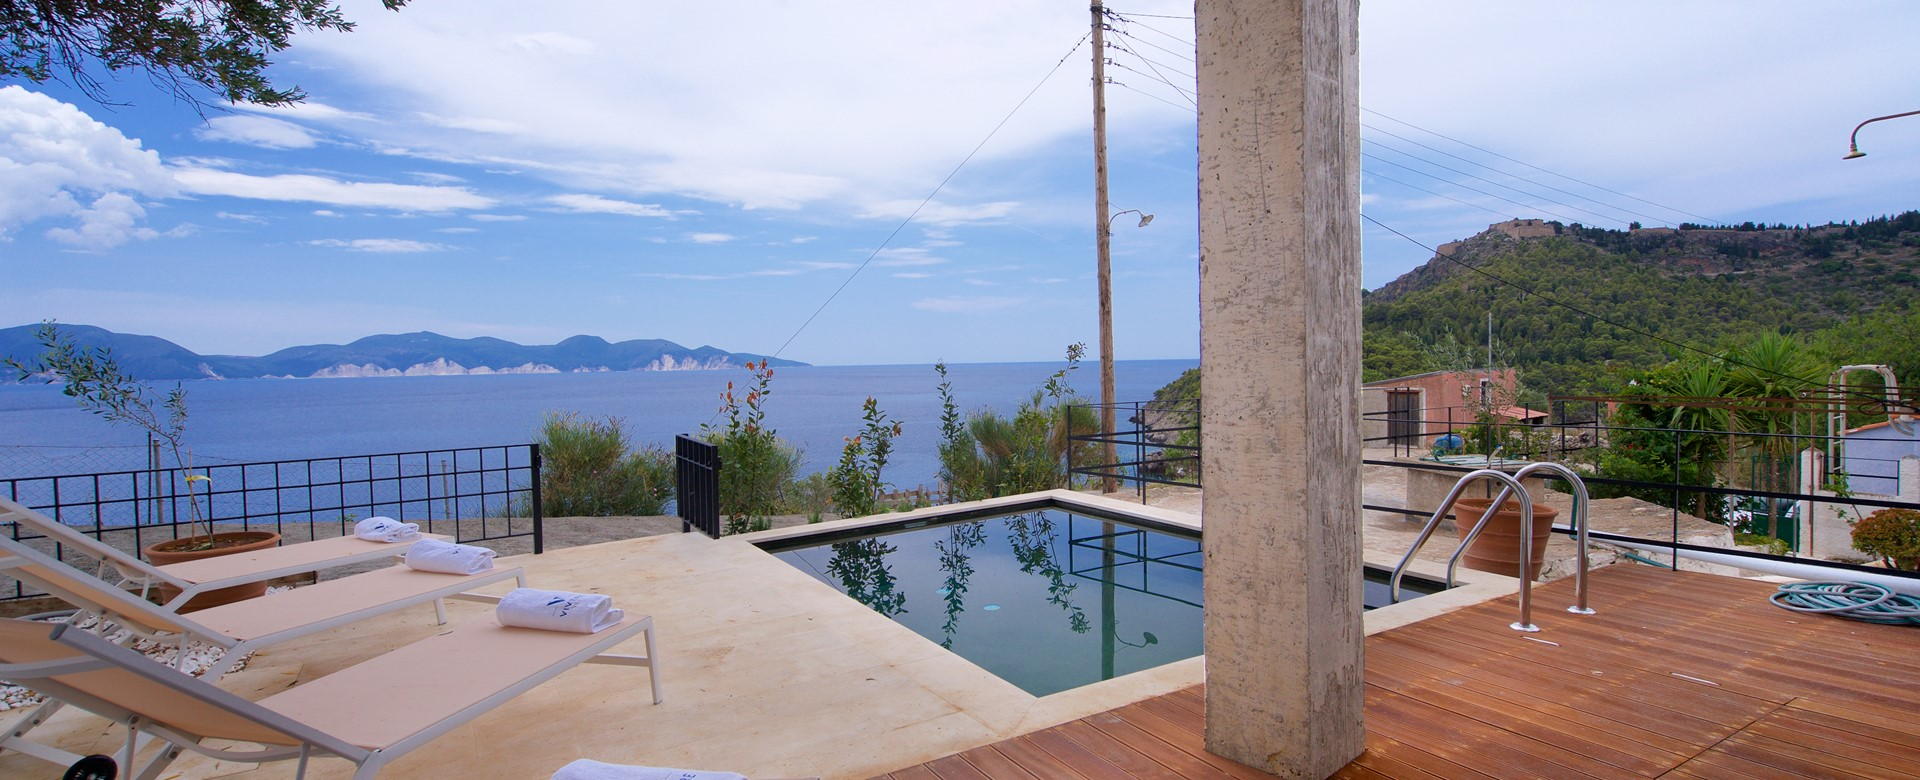 Decked veranda with pool and views out to the Mediteranean at Villa Vivere, Assos, Kefalonia